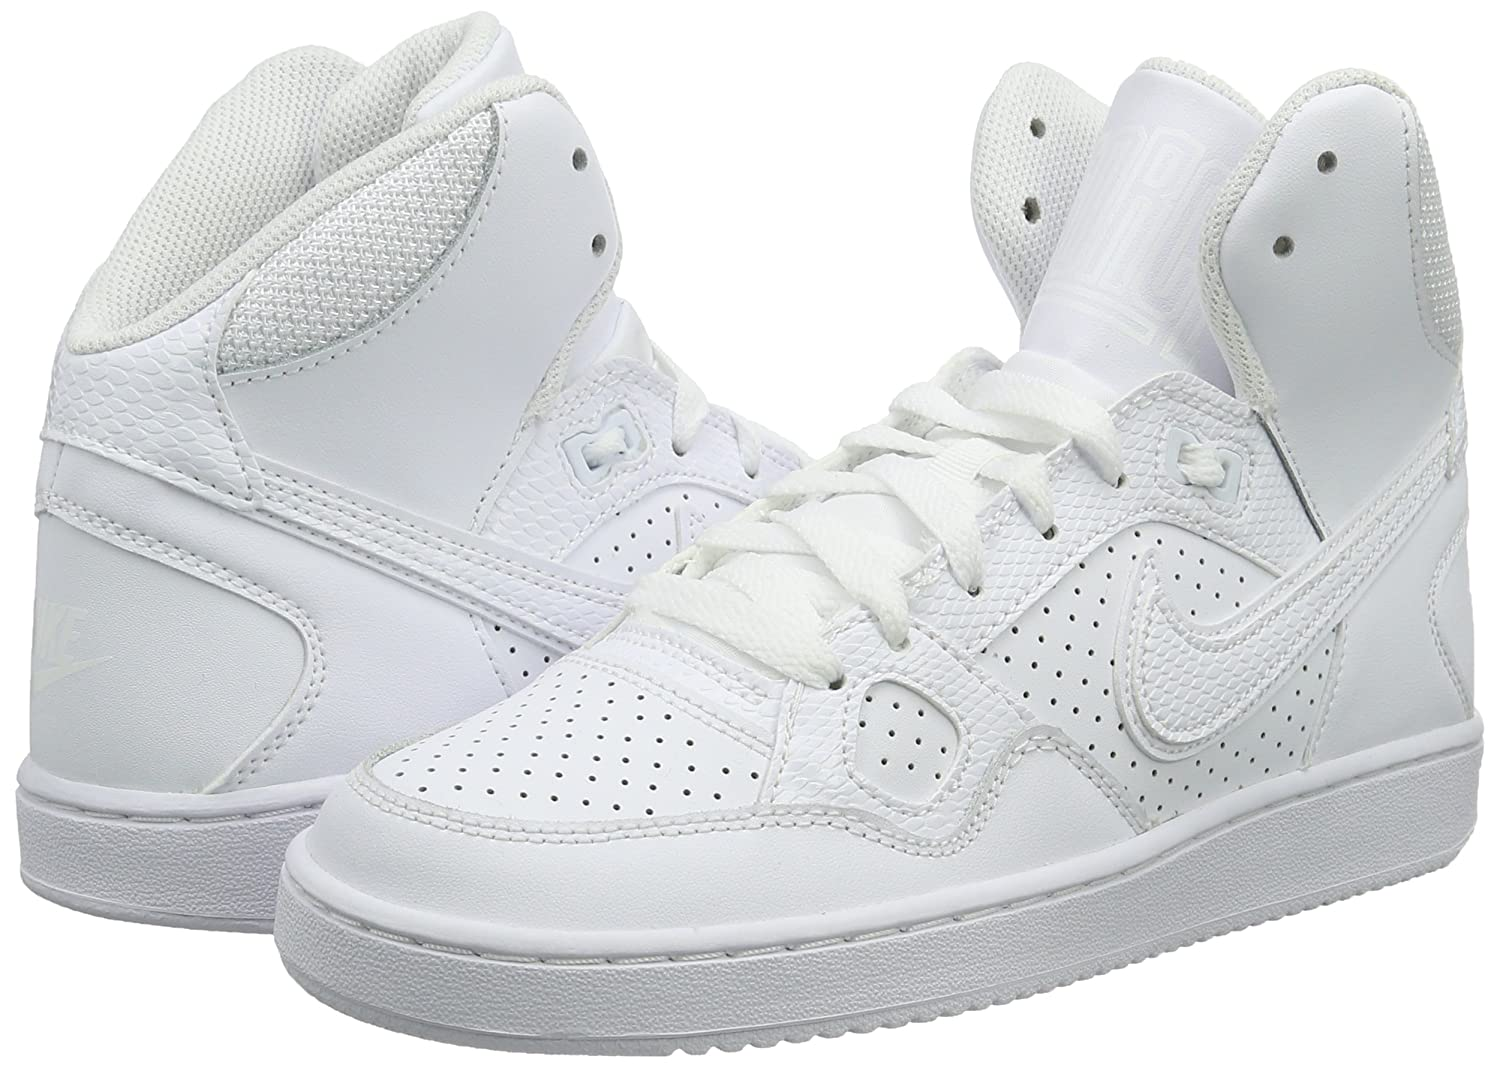 adf77ee5ccf NIKE Women 616303-115 High Top Trainers  Amazon.co.uk  Shoes   Bags